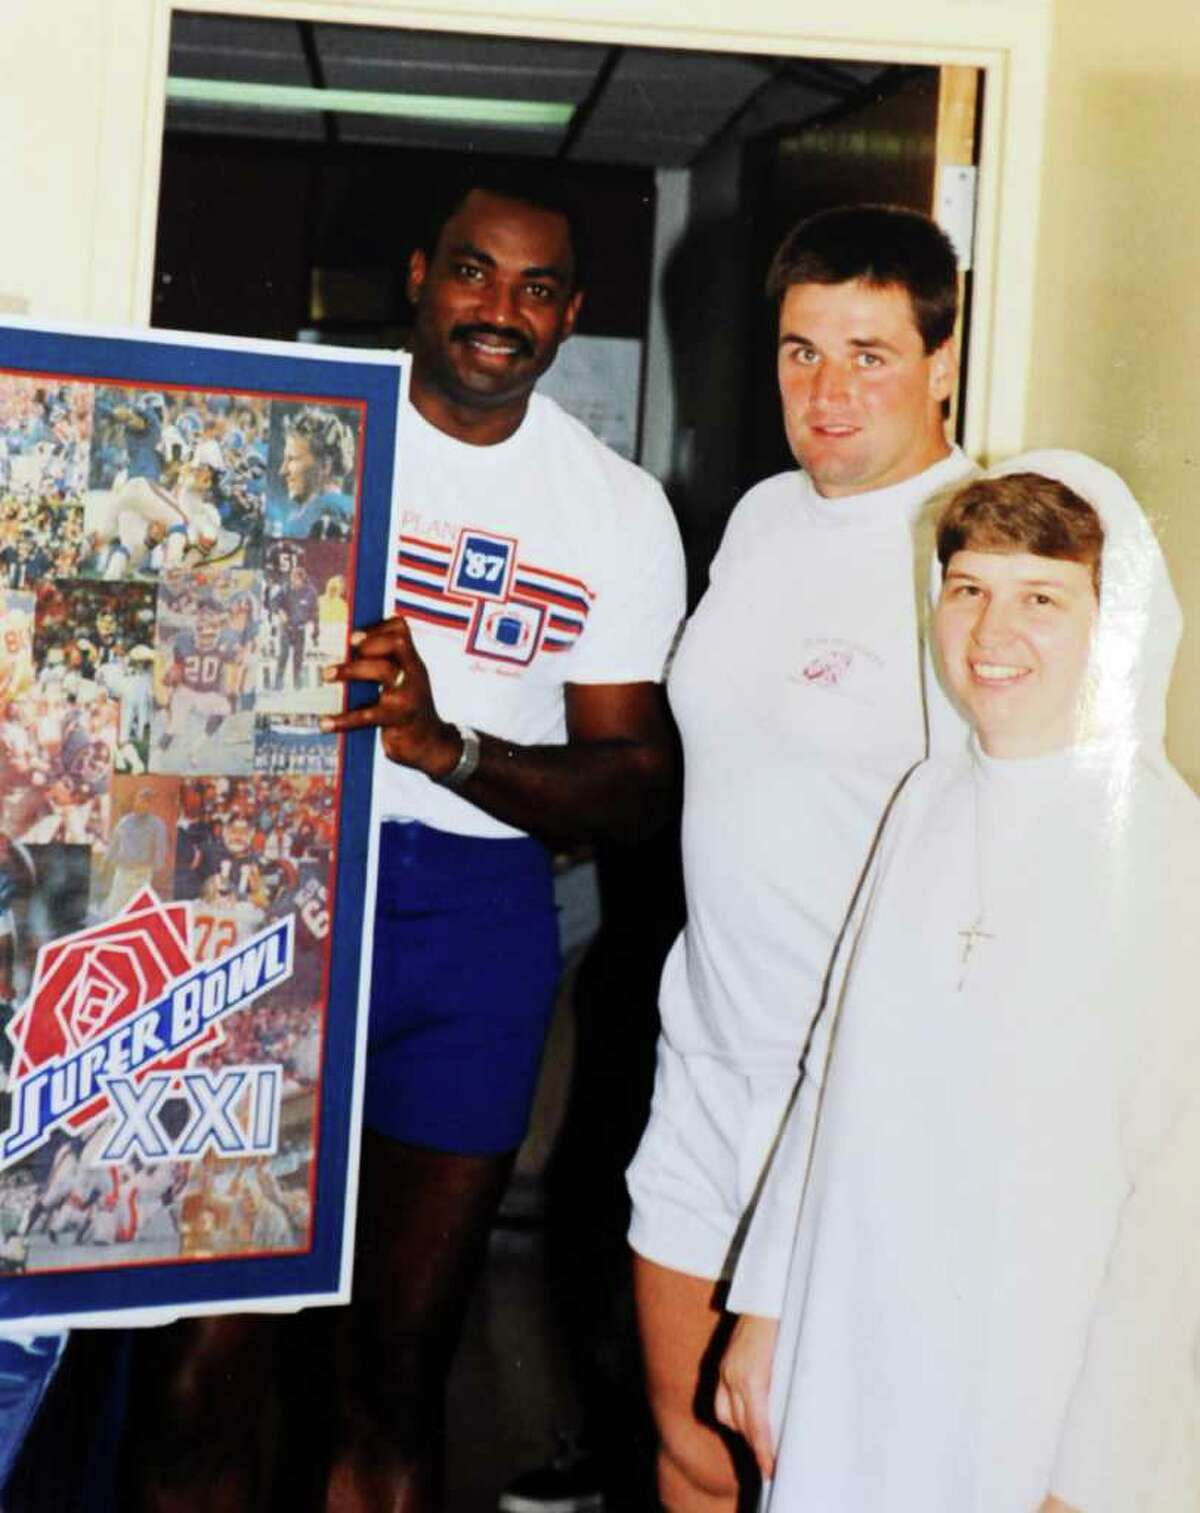 Sister Carol Ann with former New York Giants players George Martin and Jim Burt with a collage she made for the team.